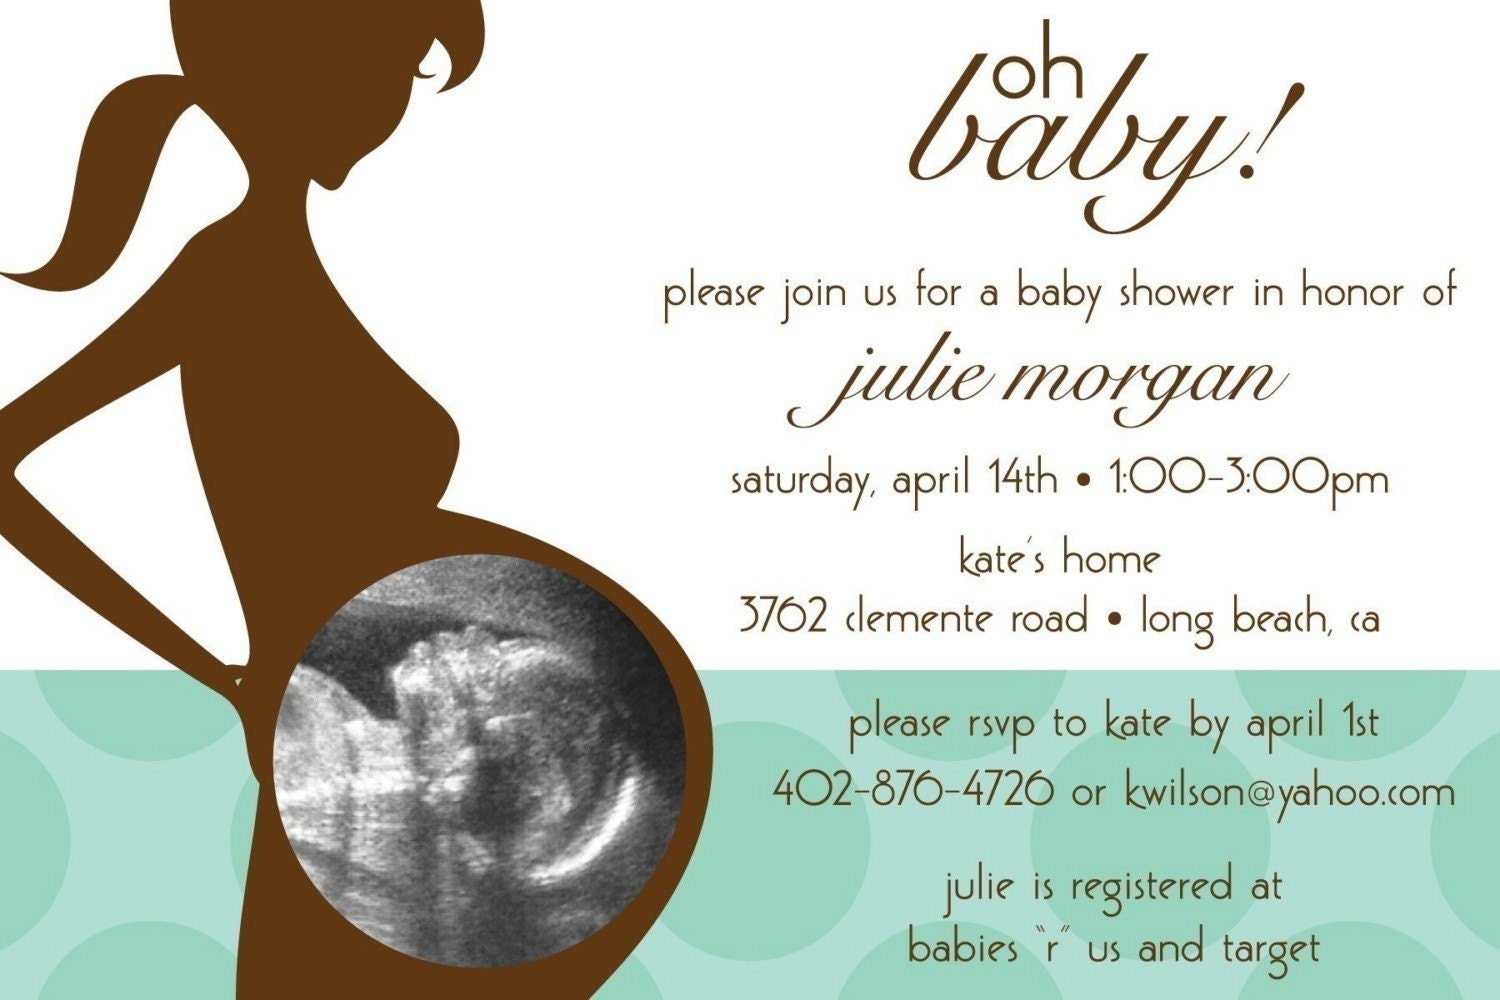 oh baby ultrasound photo custom baby shower invitation boy, Baby shower invitation